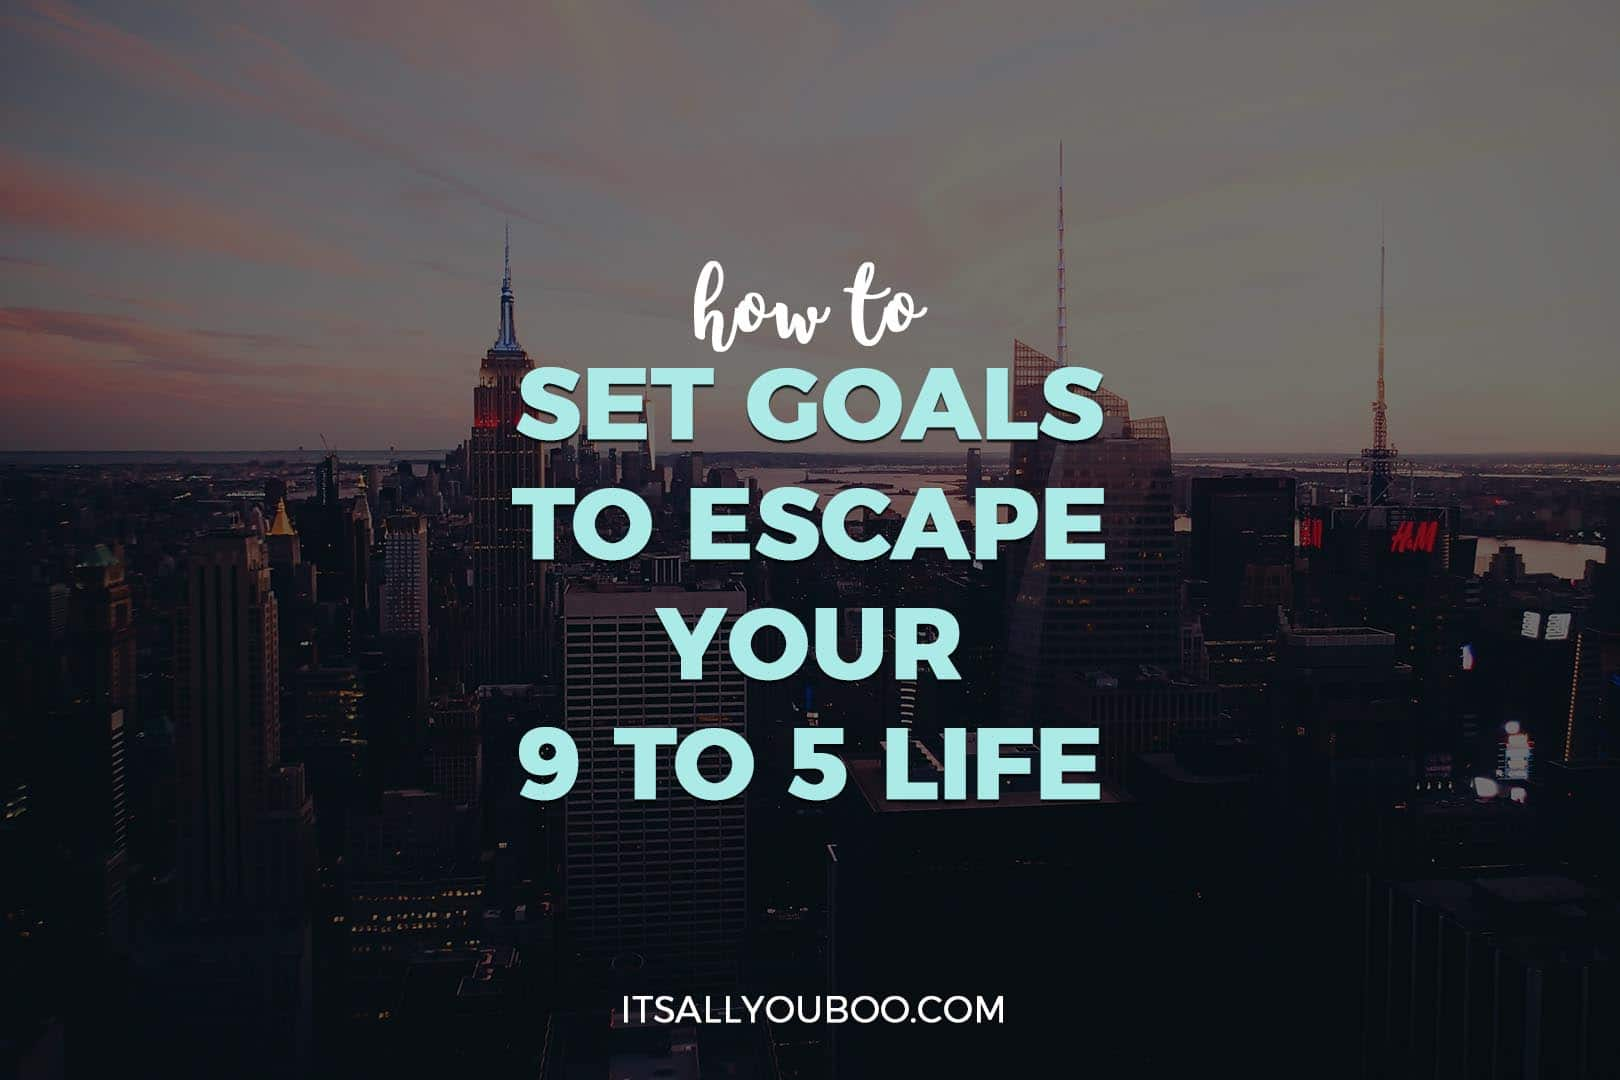 How to set goals to escape your 9 to 5